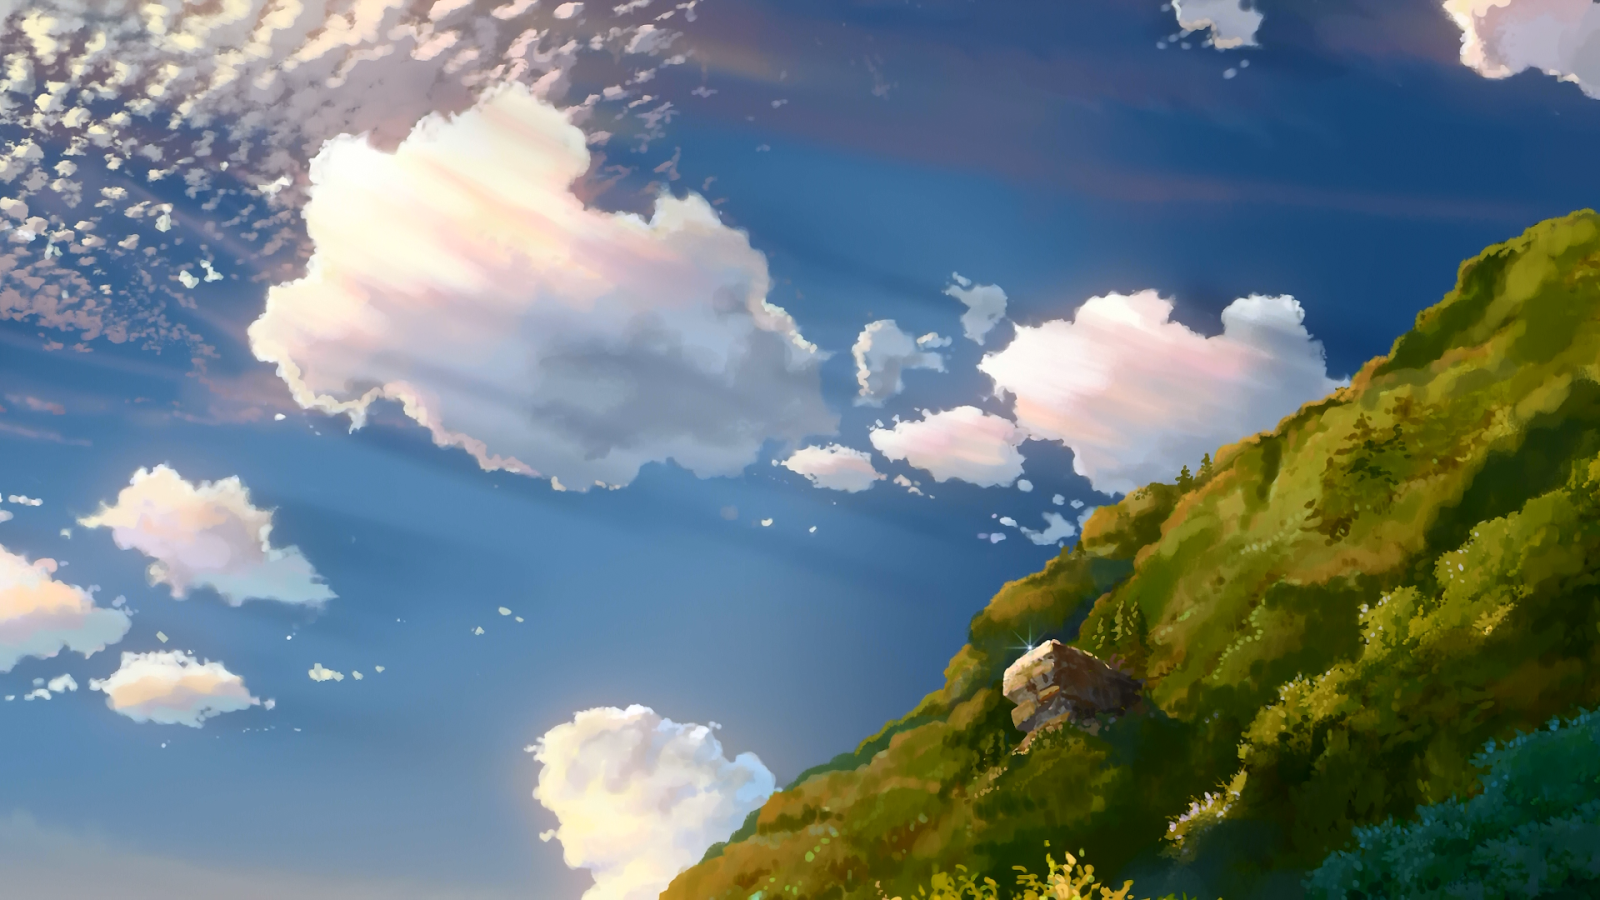 Sky (Anime Background)